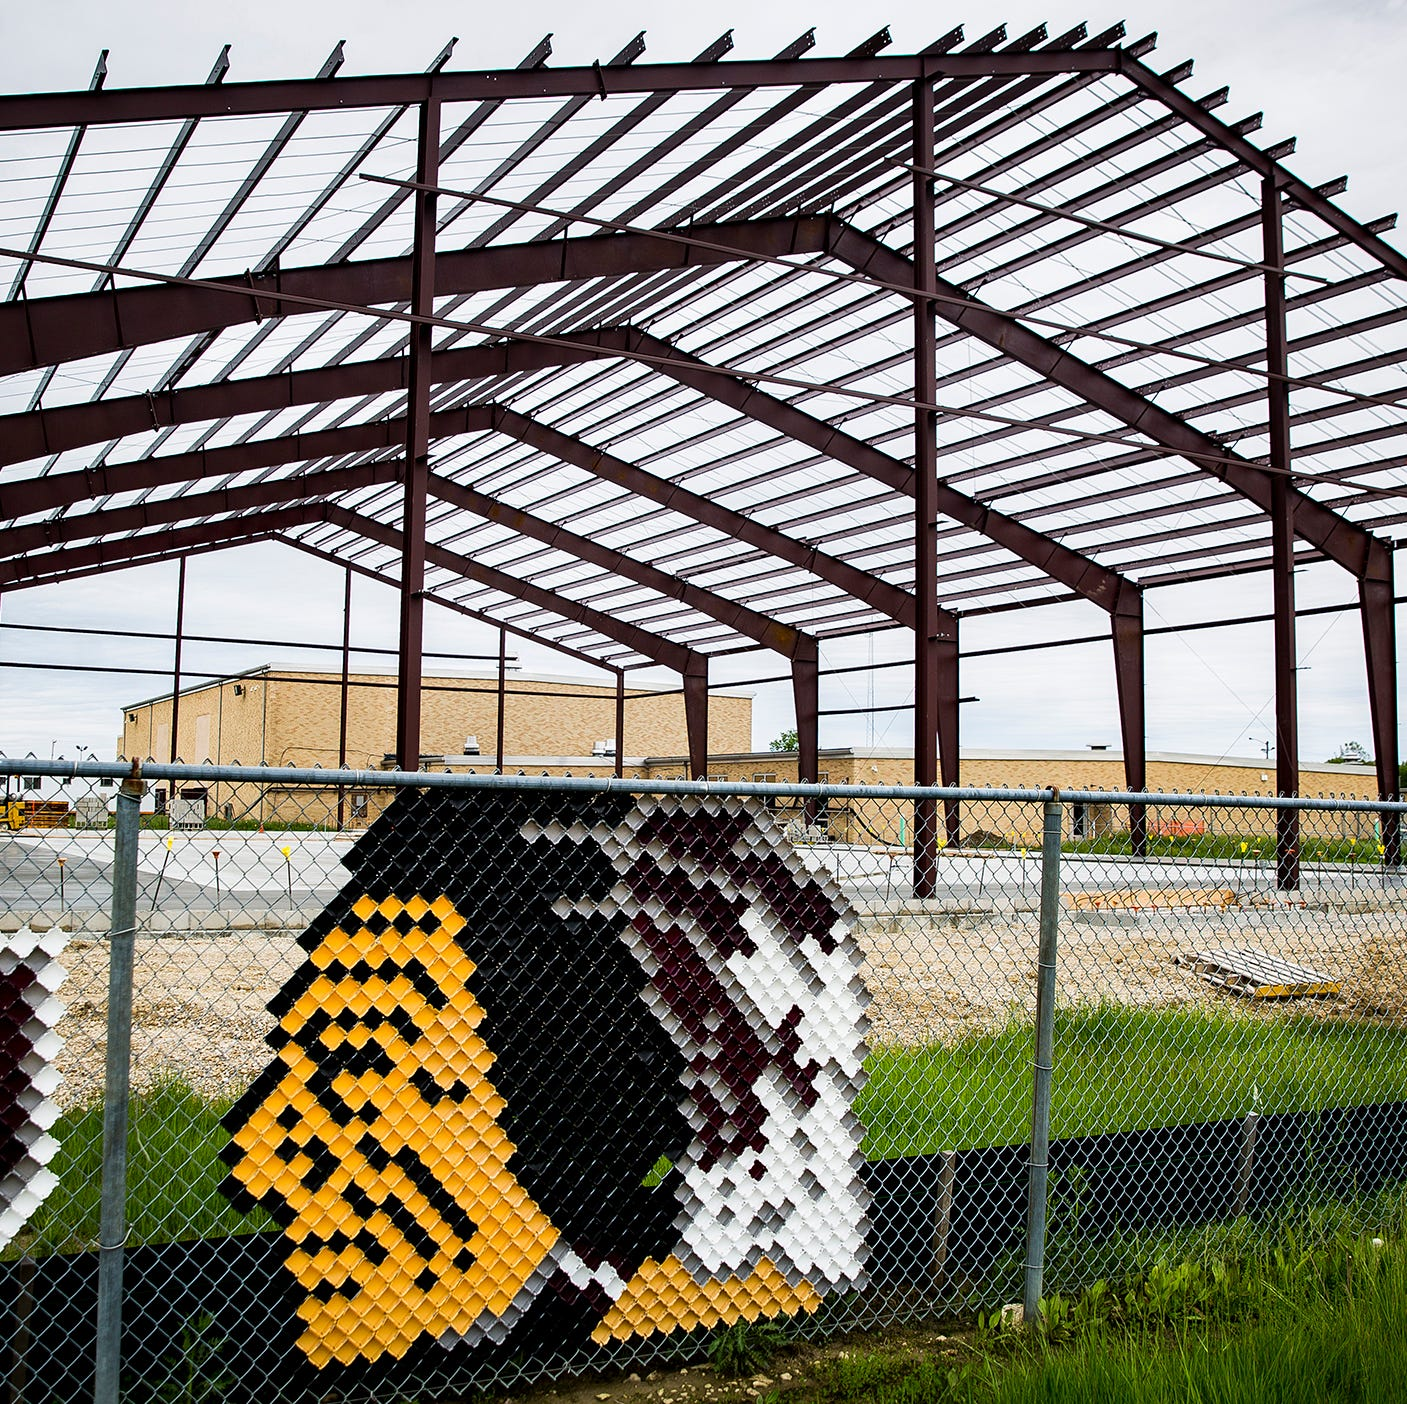 Work on Wes-Del schools includes new auxiliary gym, elementary classrooms